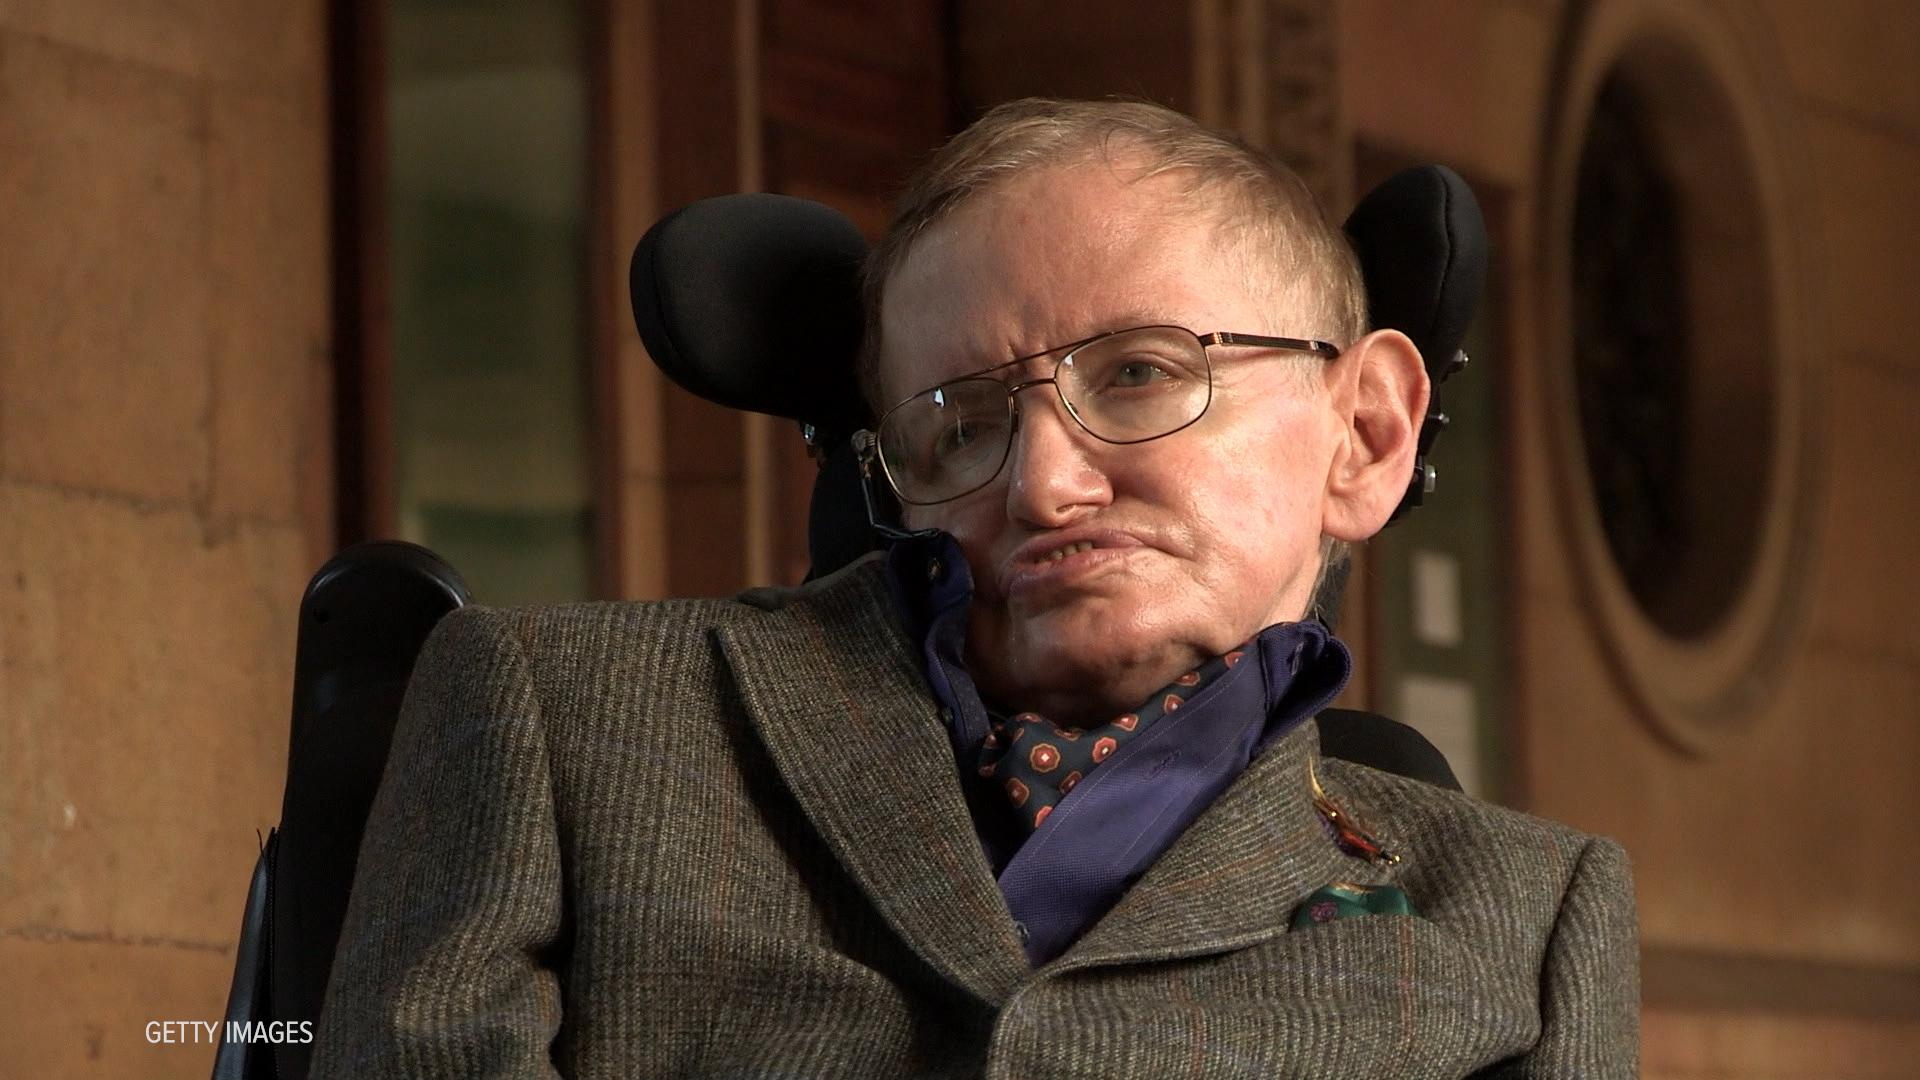 Stephen Hawking's Voice Will Be Beamed Into Black Hole During Final Send-Off